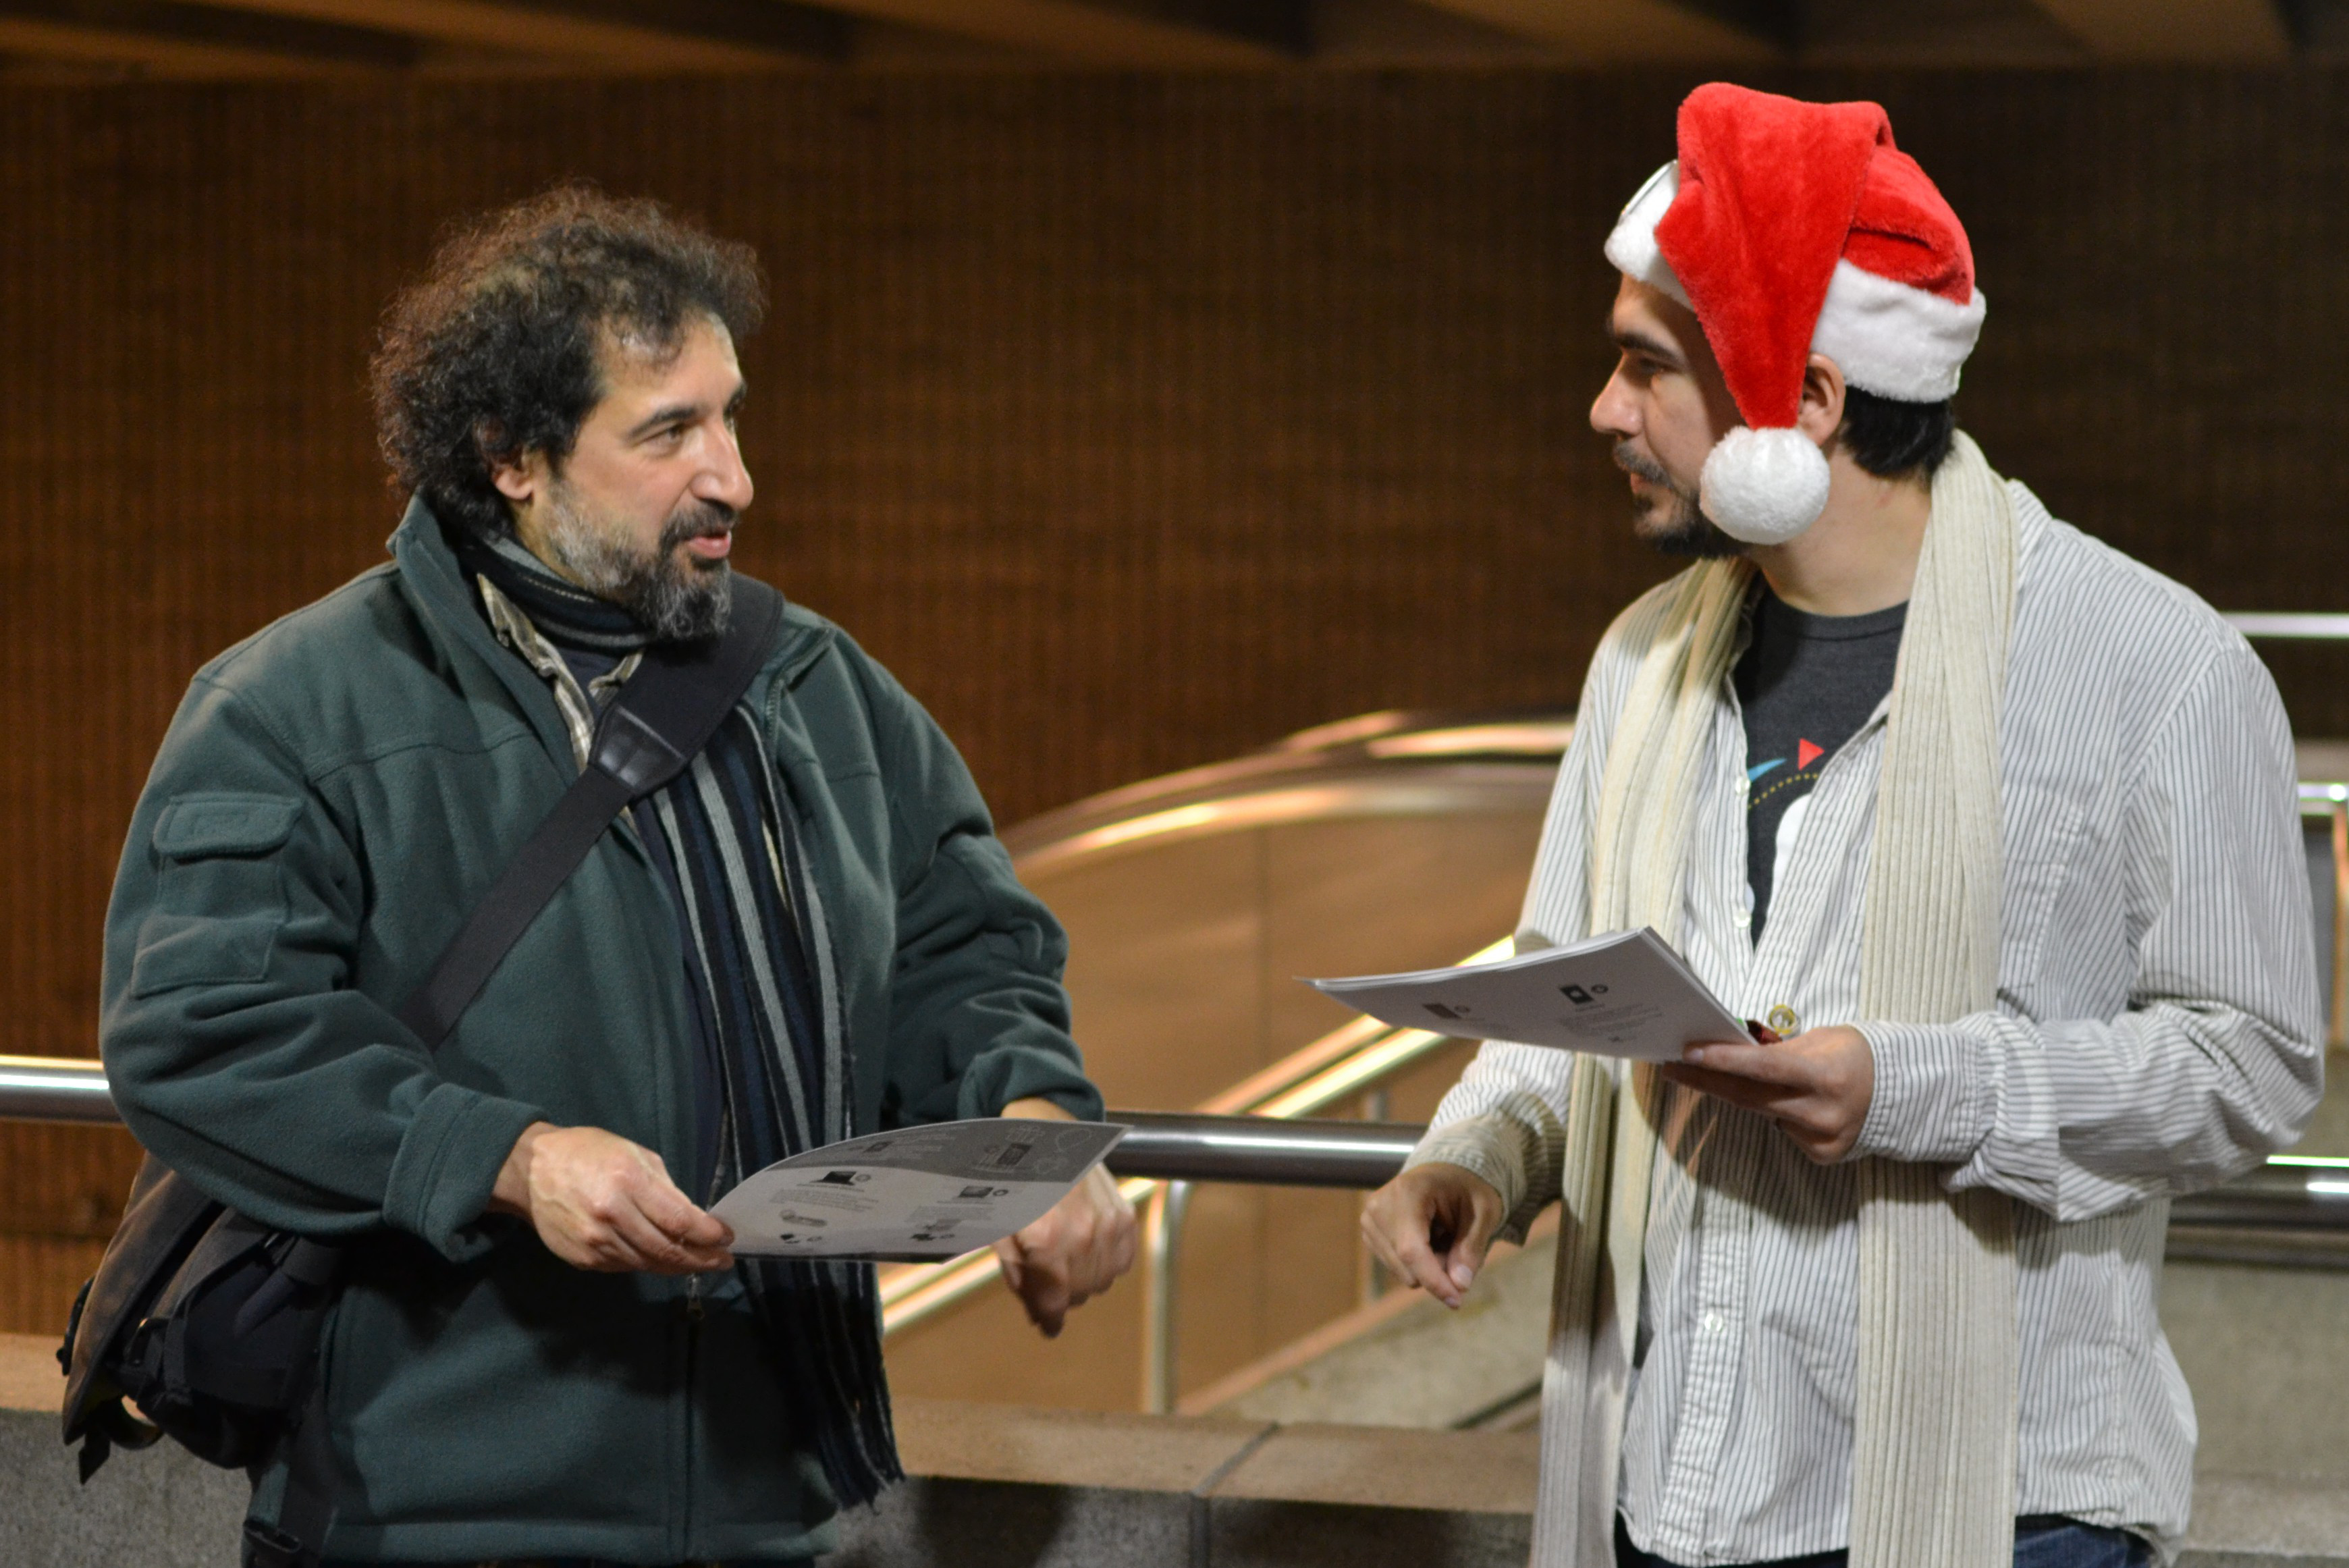 FSF system administrator Ruben Rodriguez chats with a passerby at the FSF's Giving Guide Giveaway in Somerville, MA